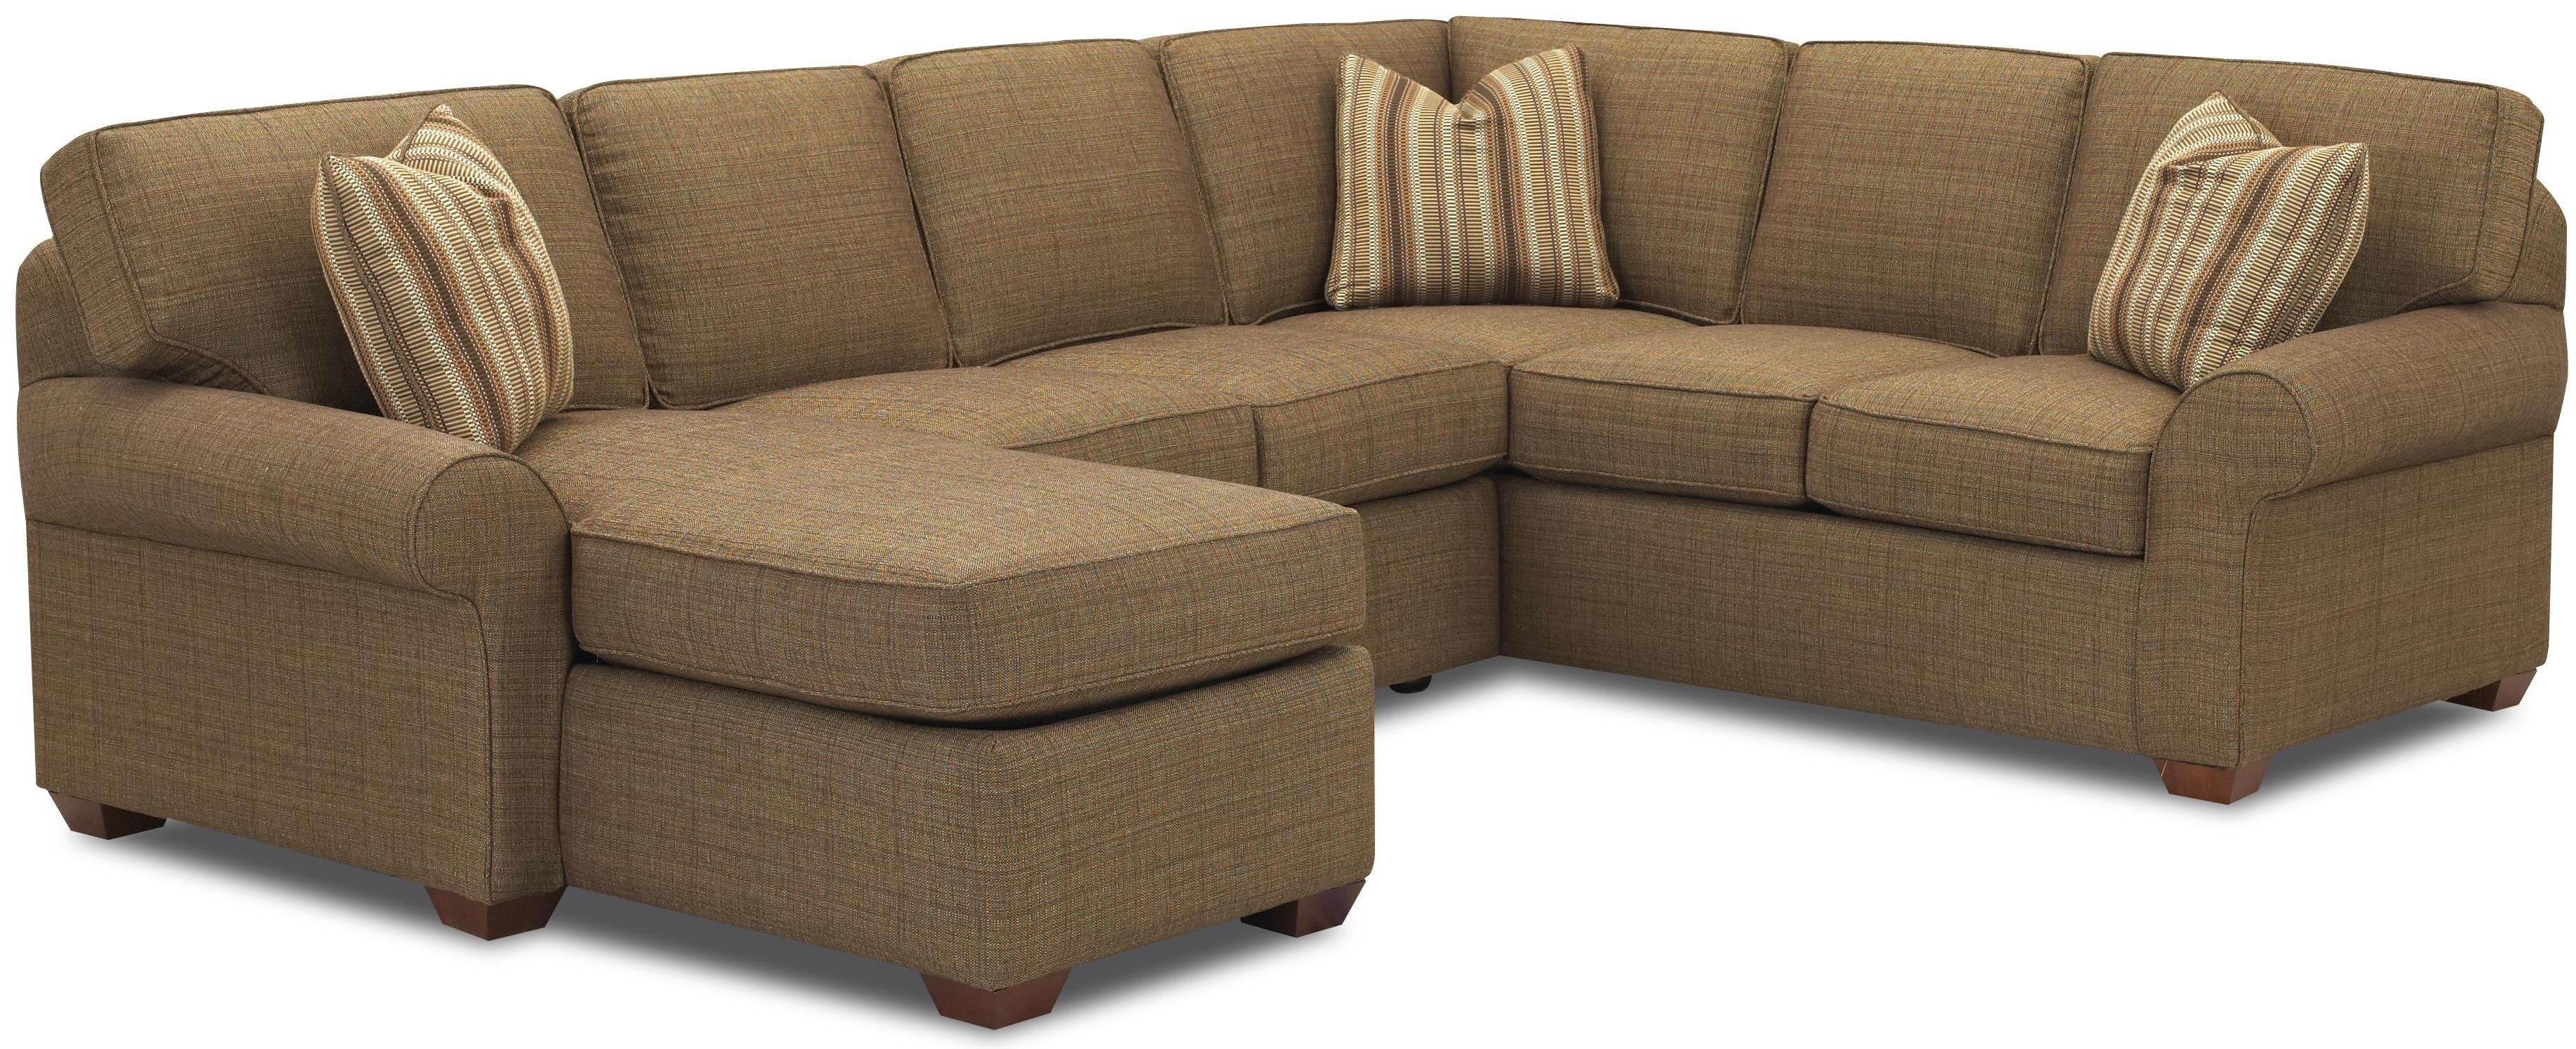 Sectional Sofa Group With Right Chaise Loungeklaussner (View 10 of 20)